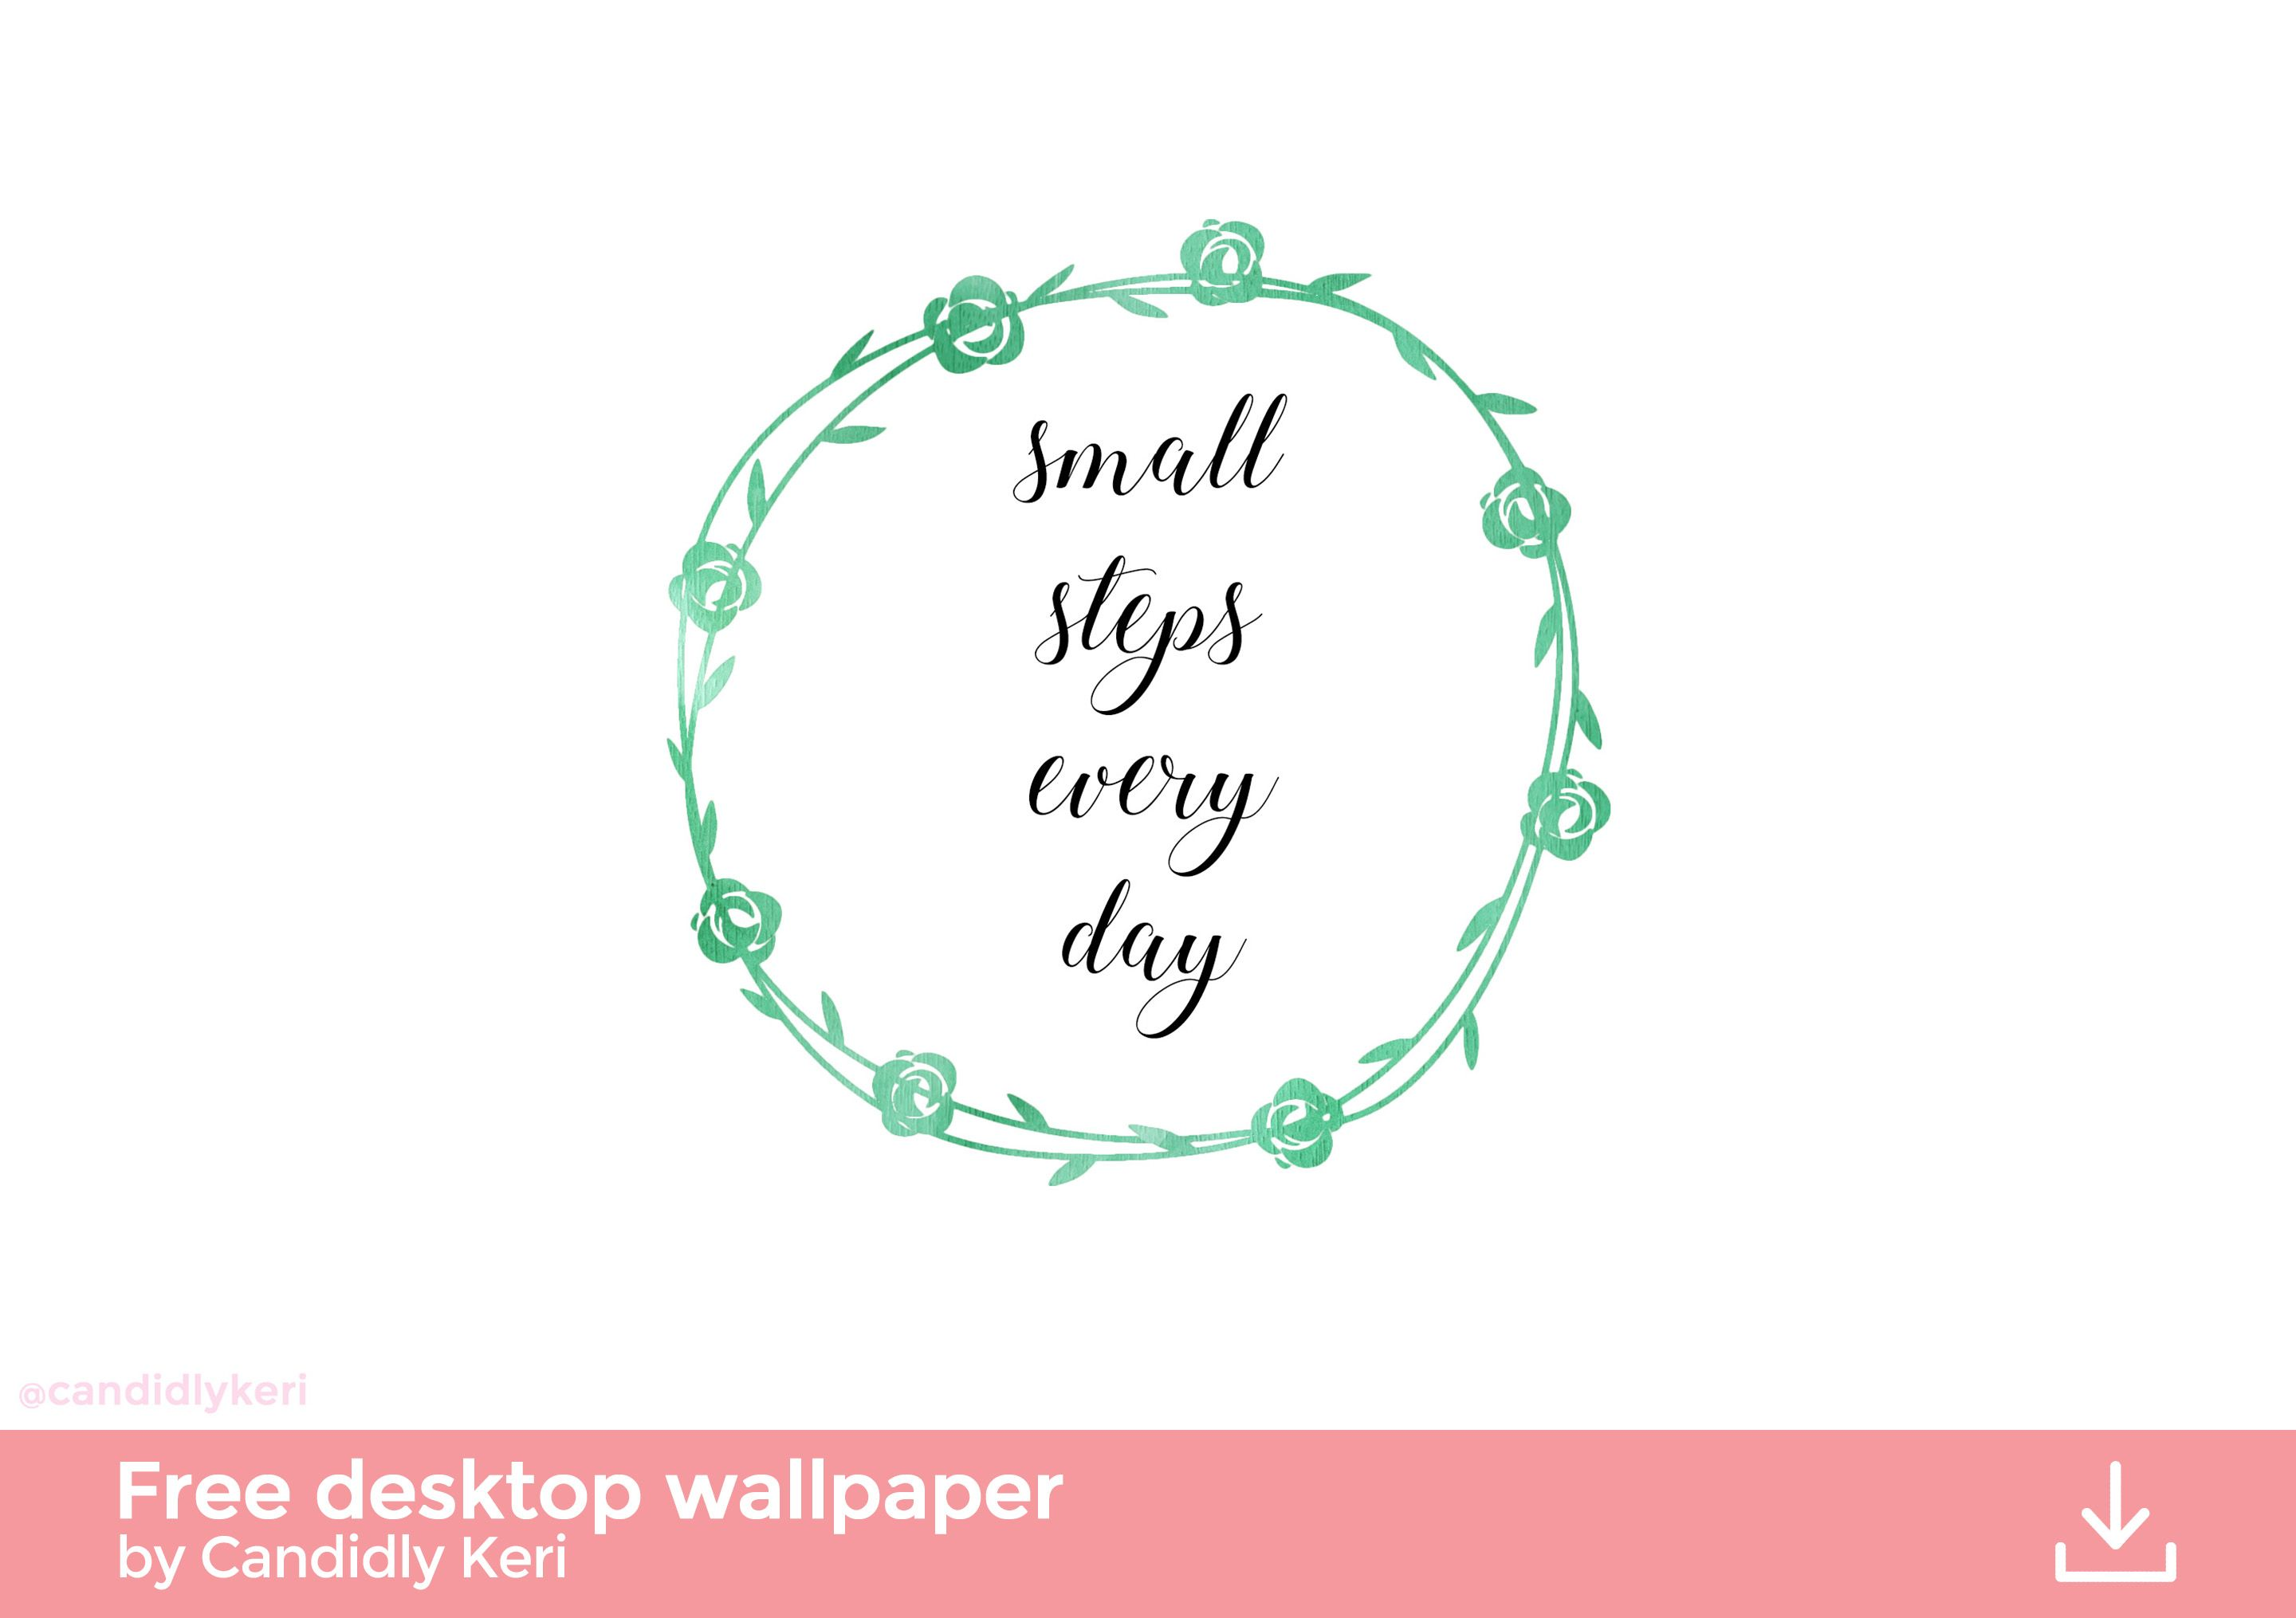 small steps every day green watercolor flower wreath crown quote inspirational background wallpaper you